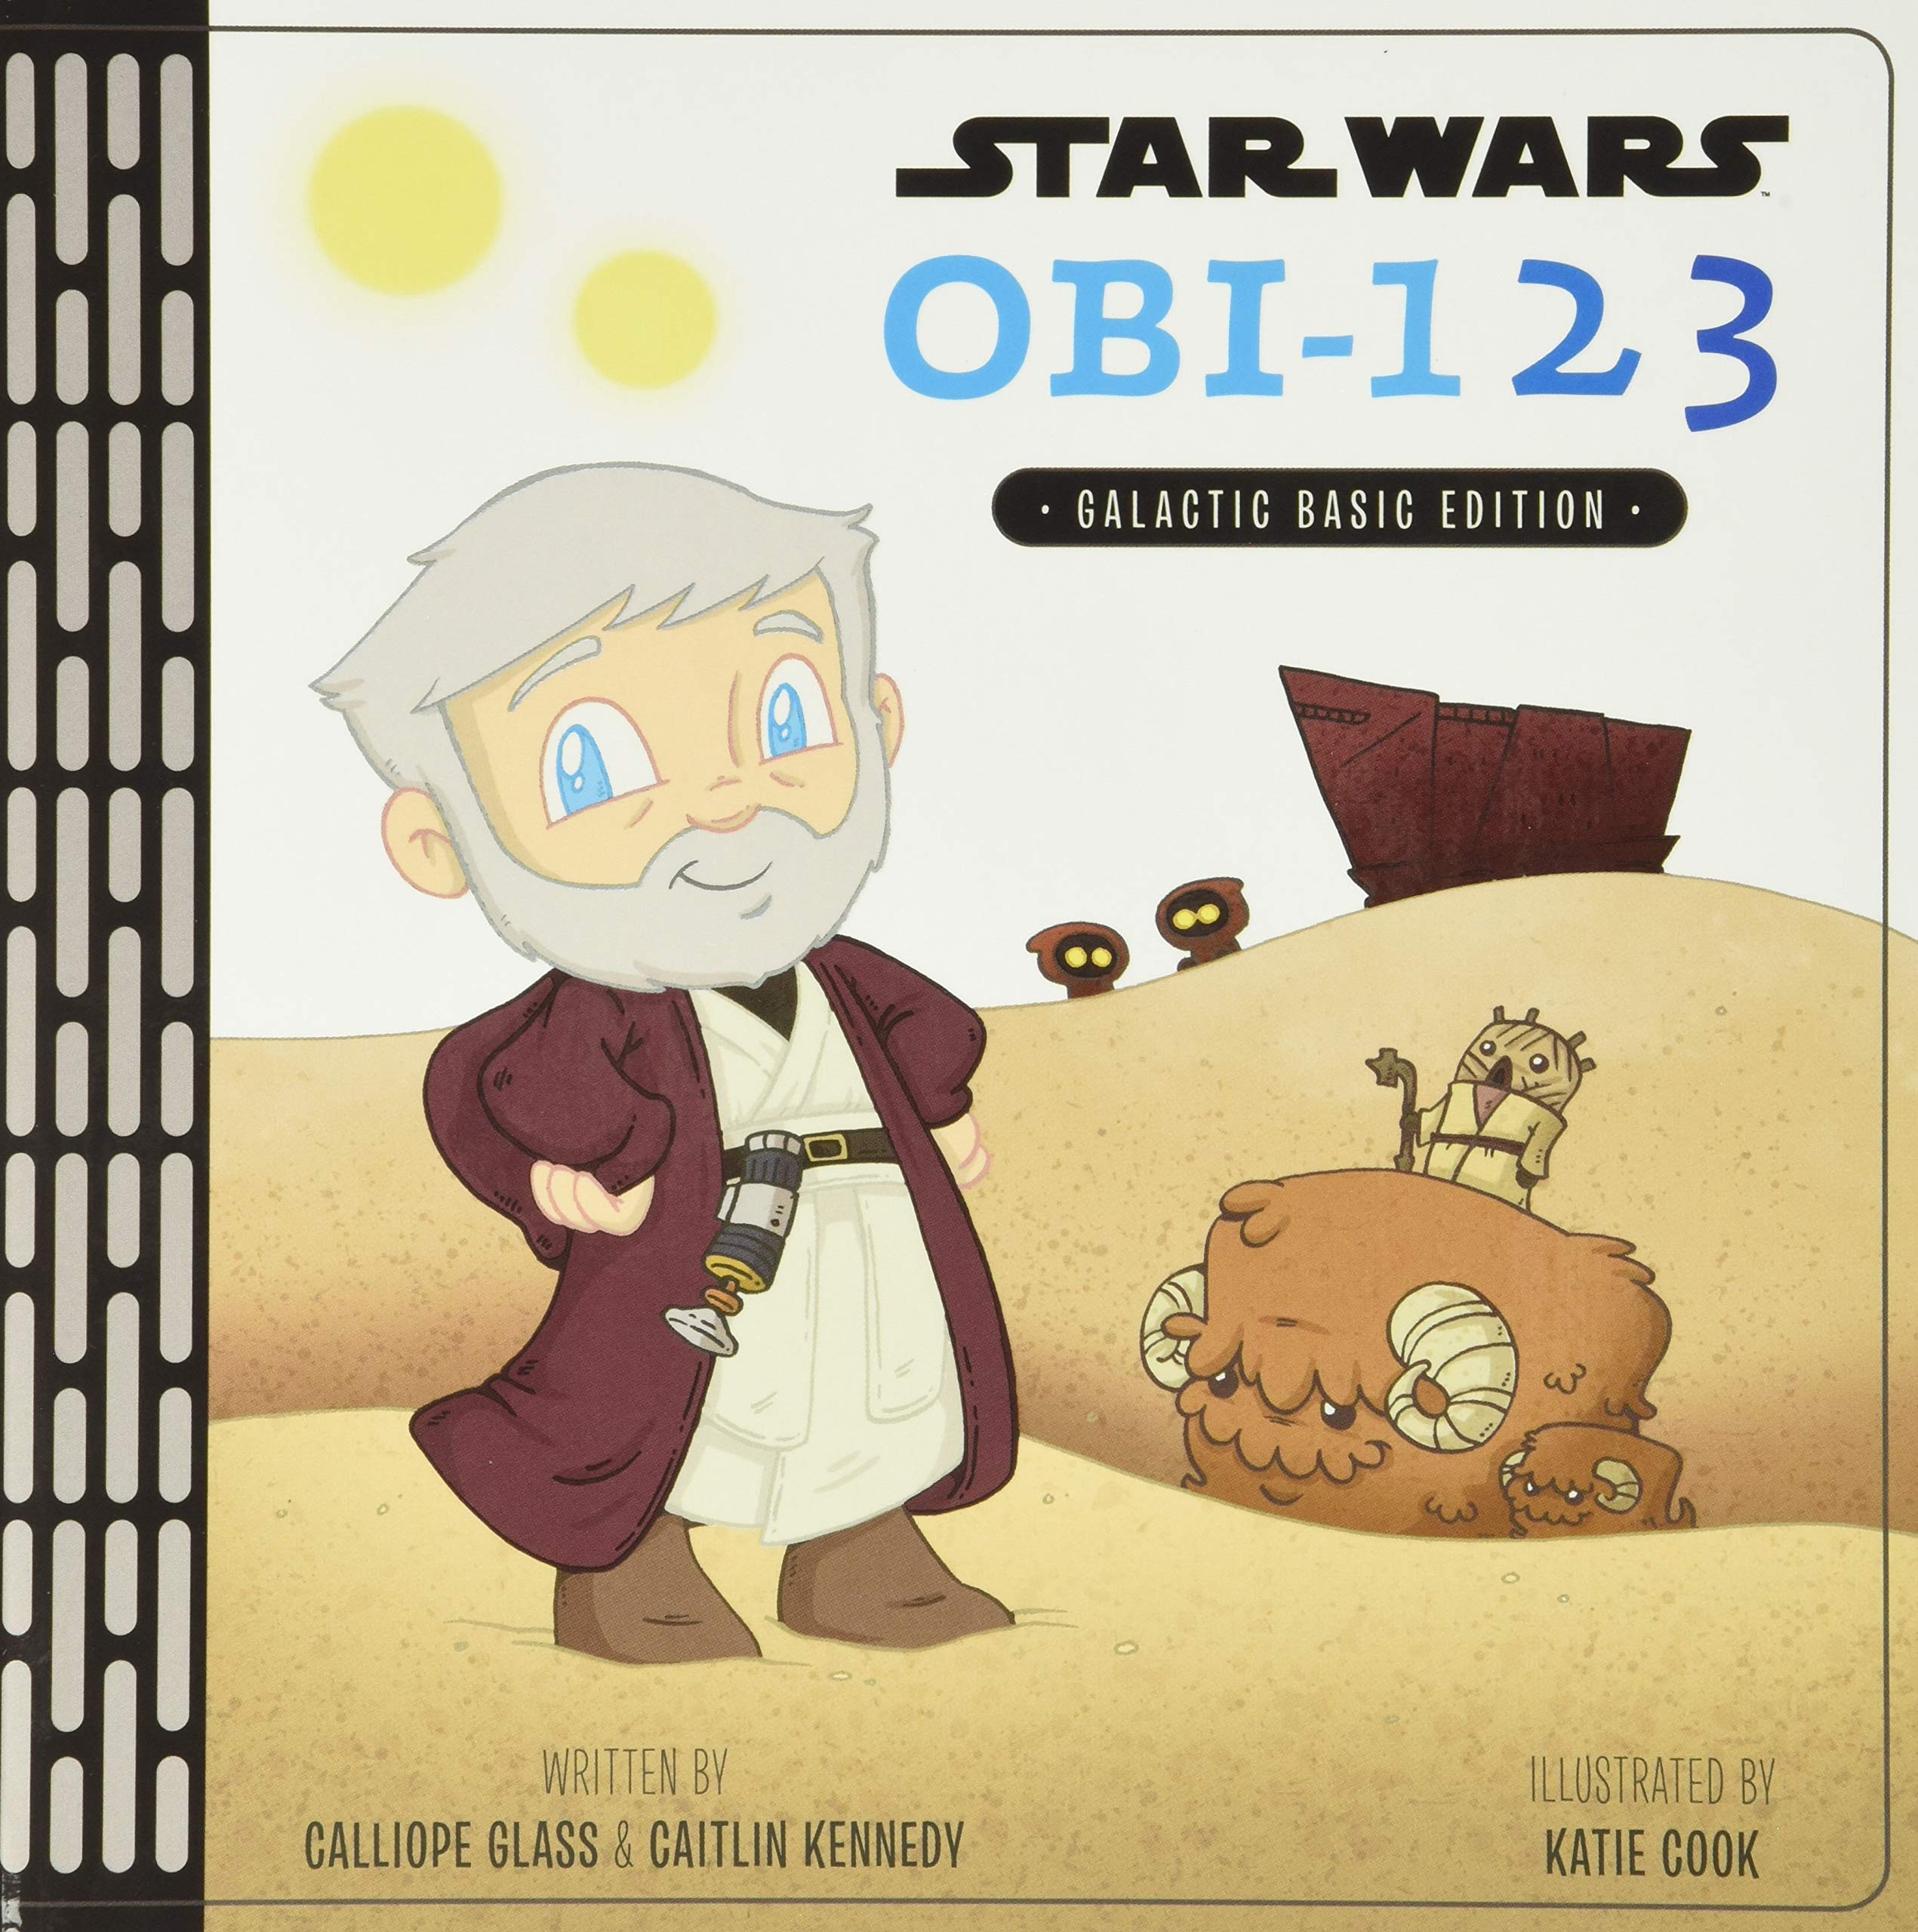 Star Wars: Obi 1-2-3 (Galactic Basic Edition)